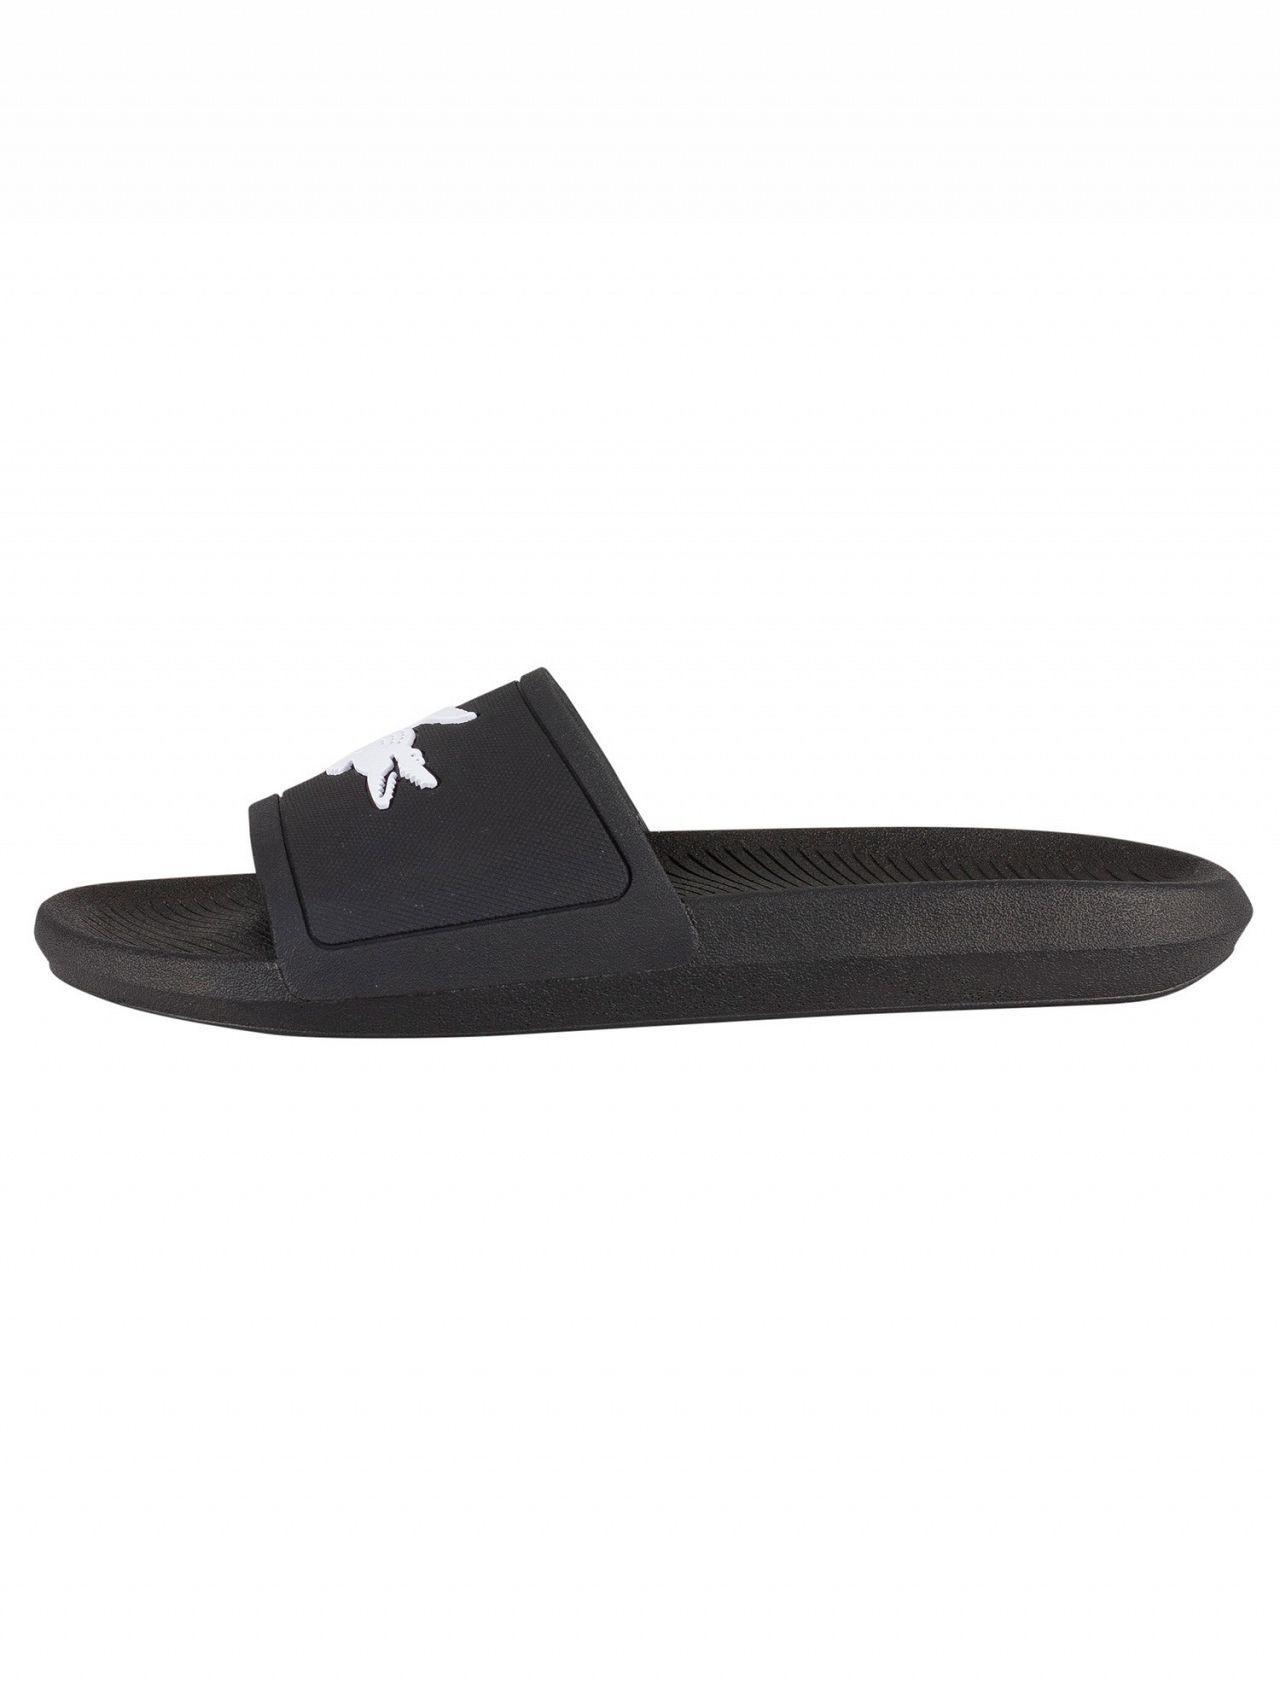 459e42b0f33368 Lyst - Lacoste Black Flip-flops With Contrasting Logo in Black for Men -  Save 31%